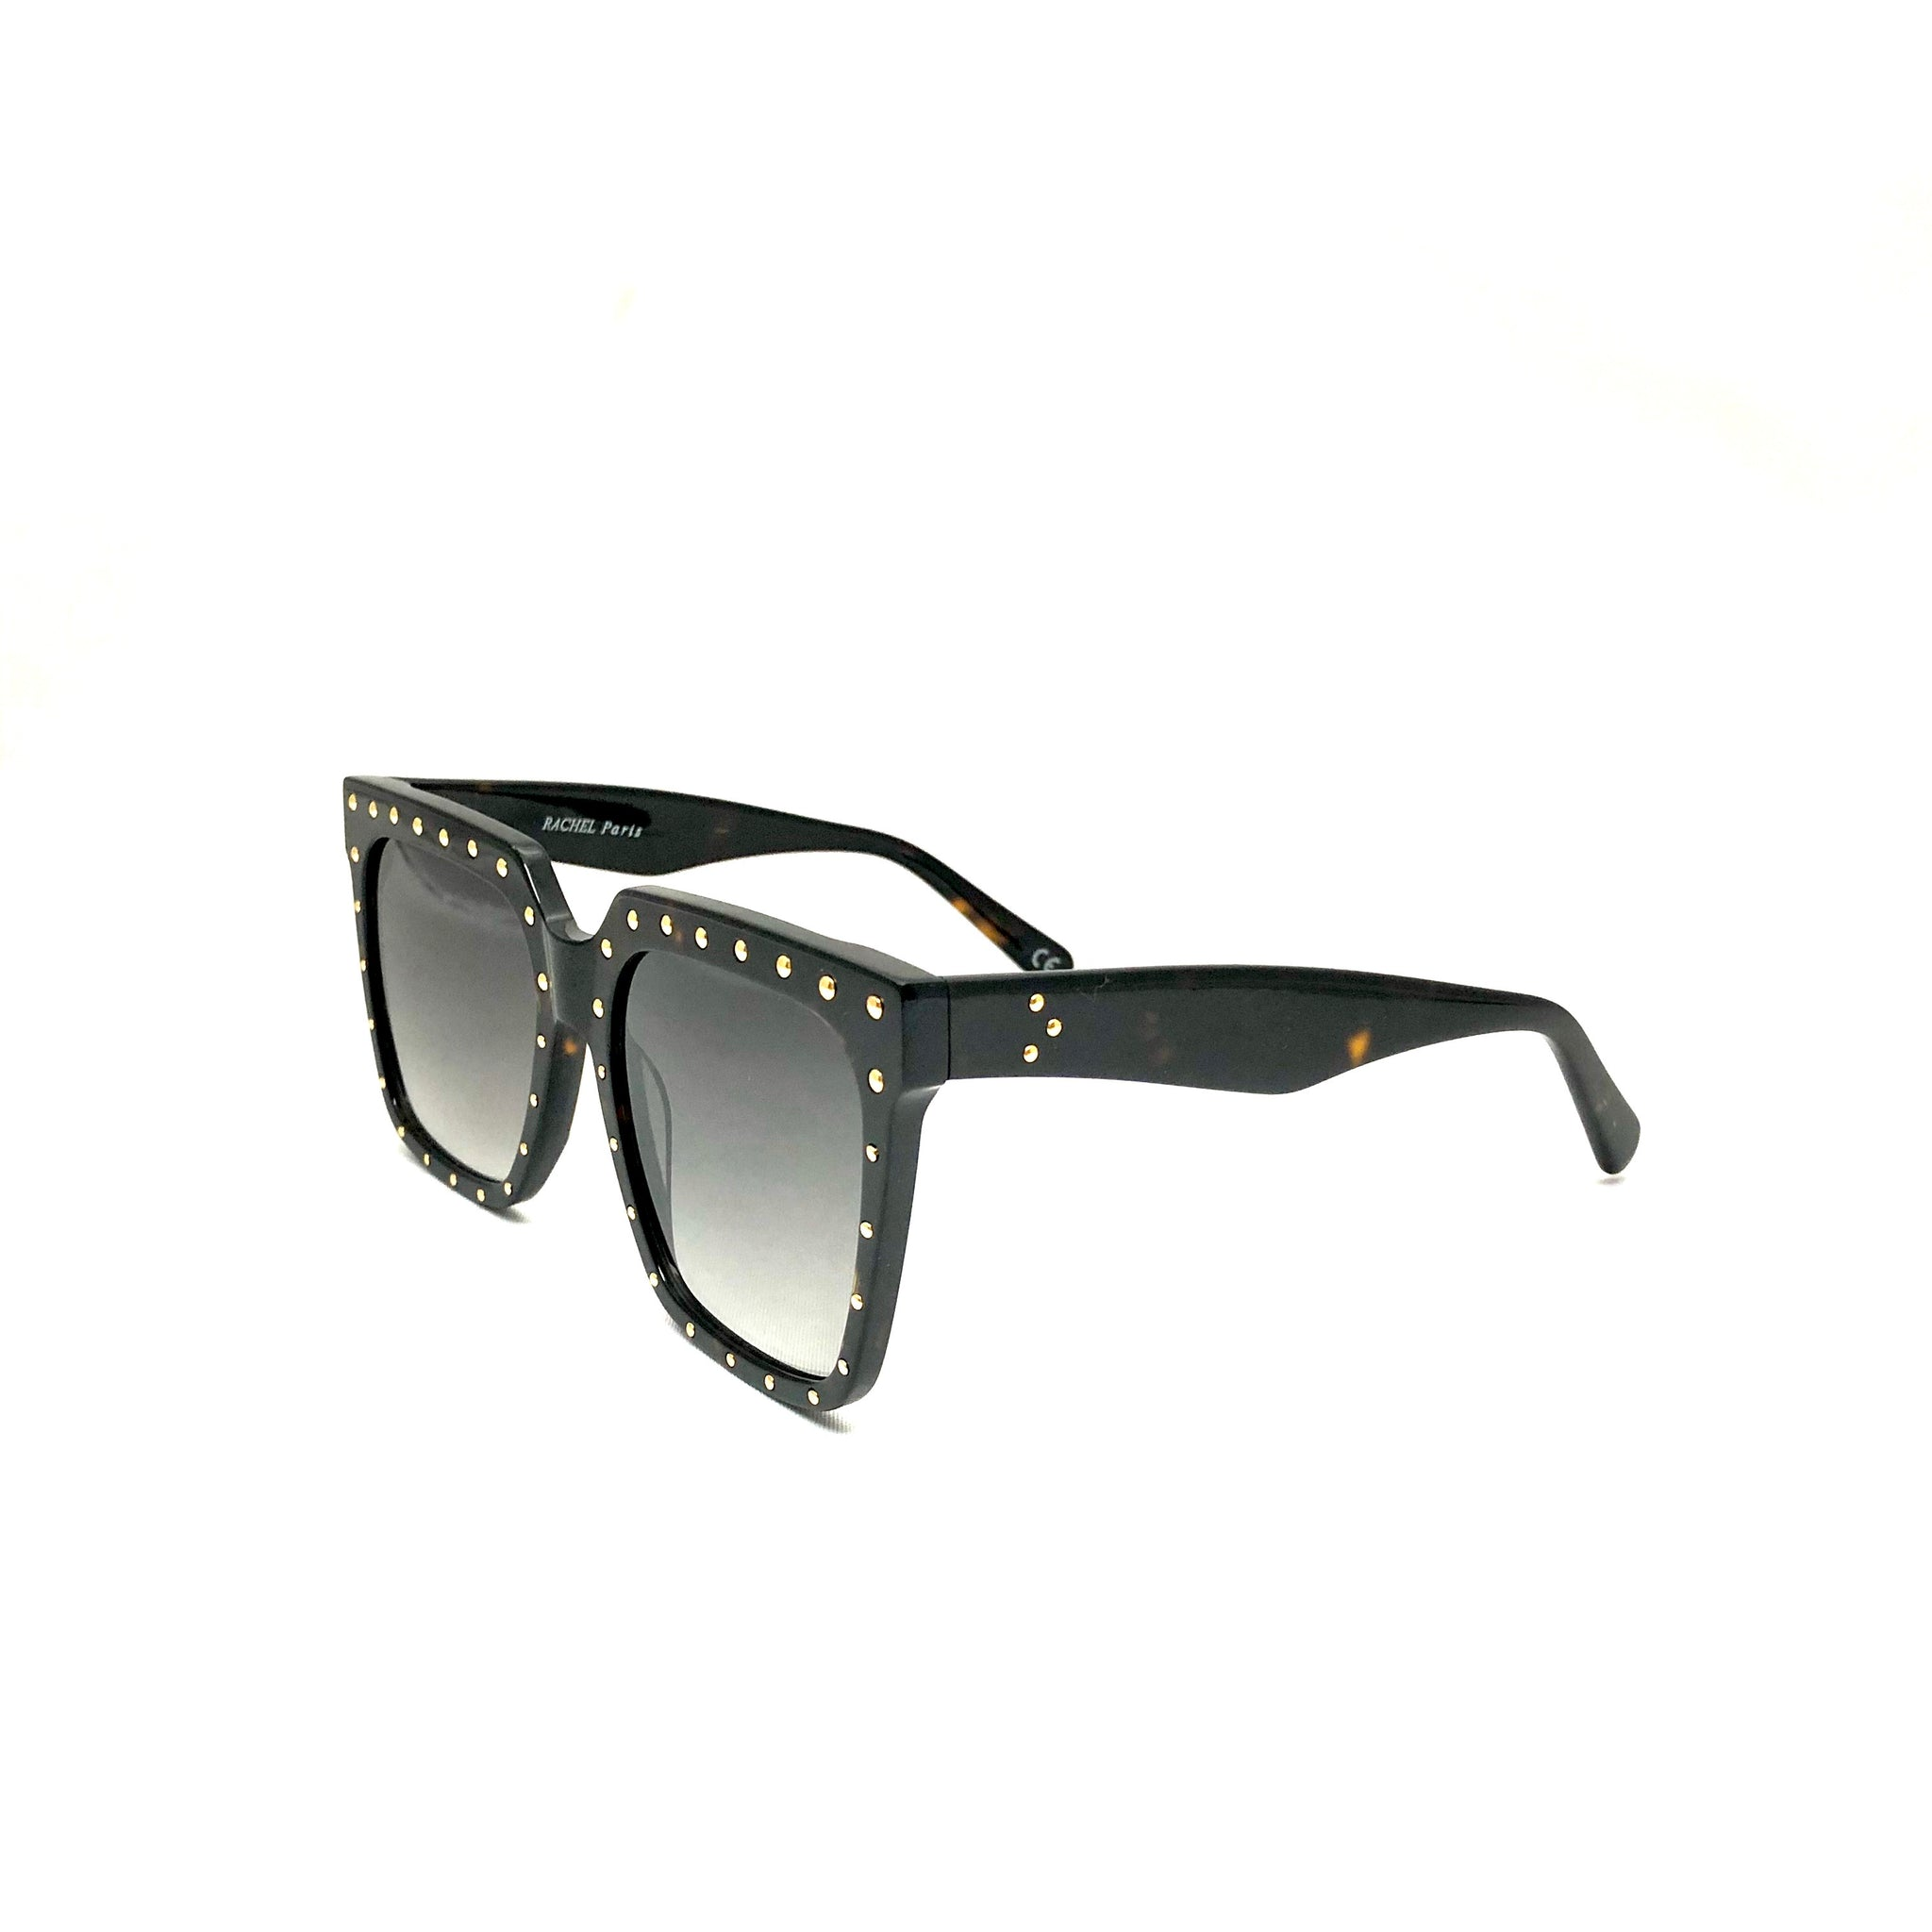 Rachel Paris Sunglasses